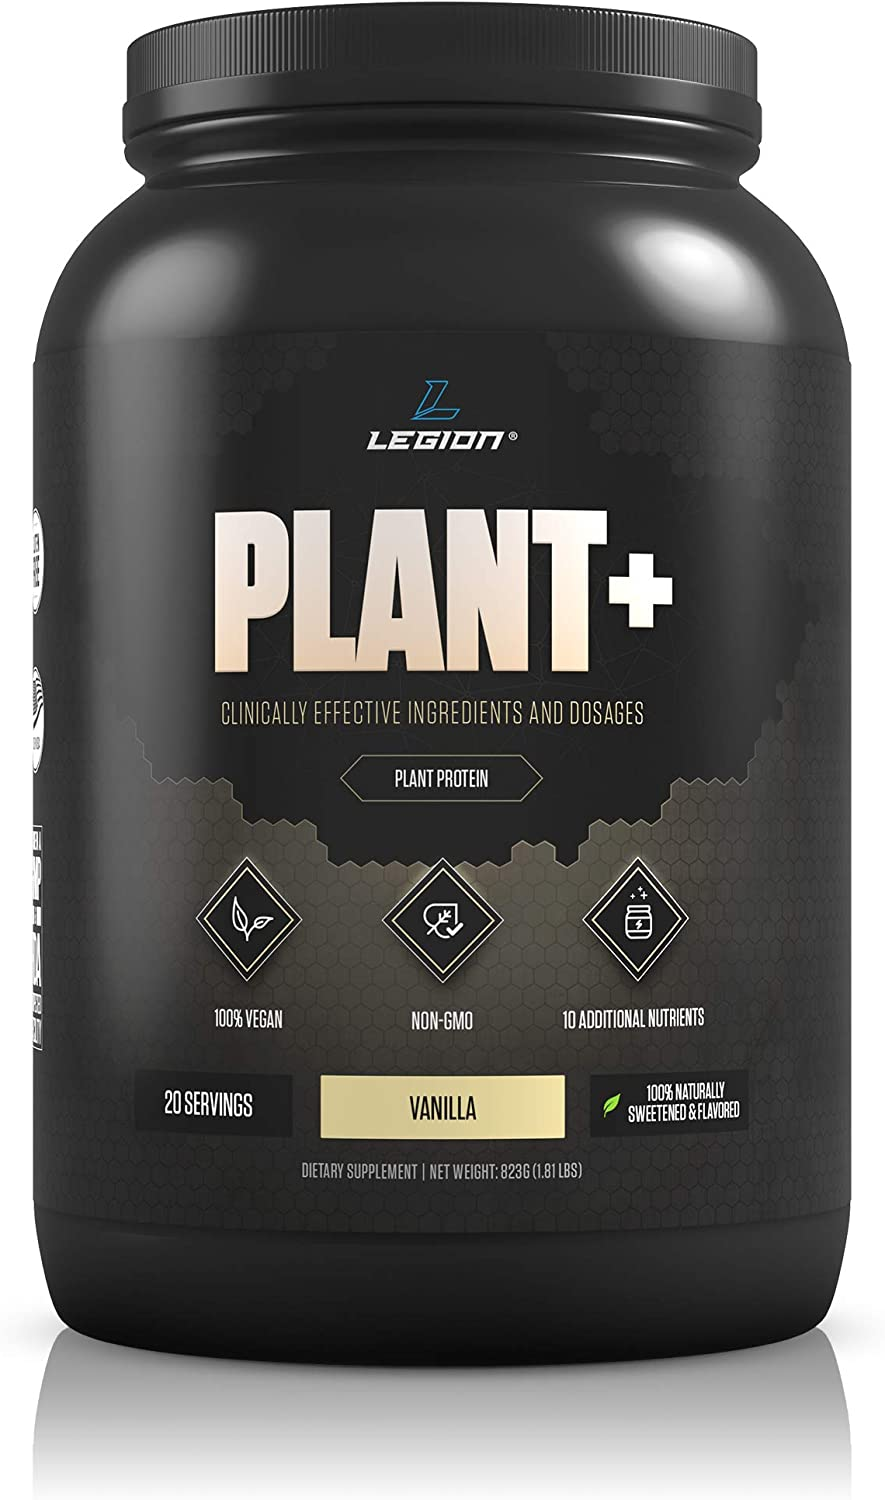 Legion Plant+ Vegan Protein Powder, Vanilla - Rice and Pea, Plant Based Protein Blend. Gluten Free, GMO Free, Naturally Sweetened and Flavored, 20 Servings, 2 Lbs (Vanilla)